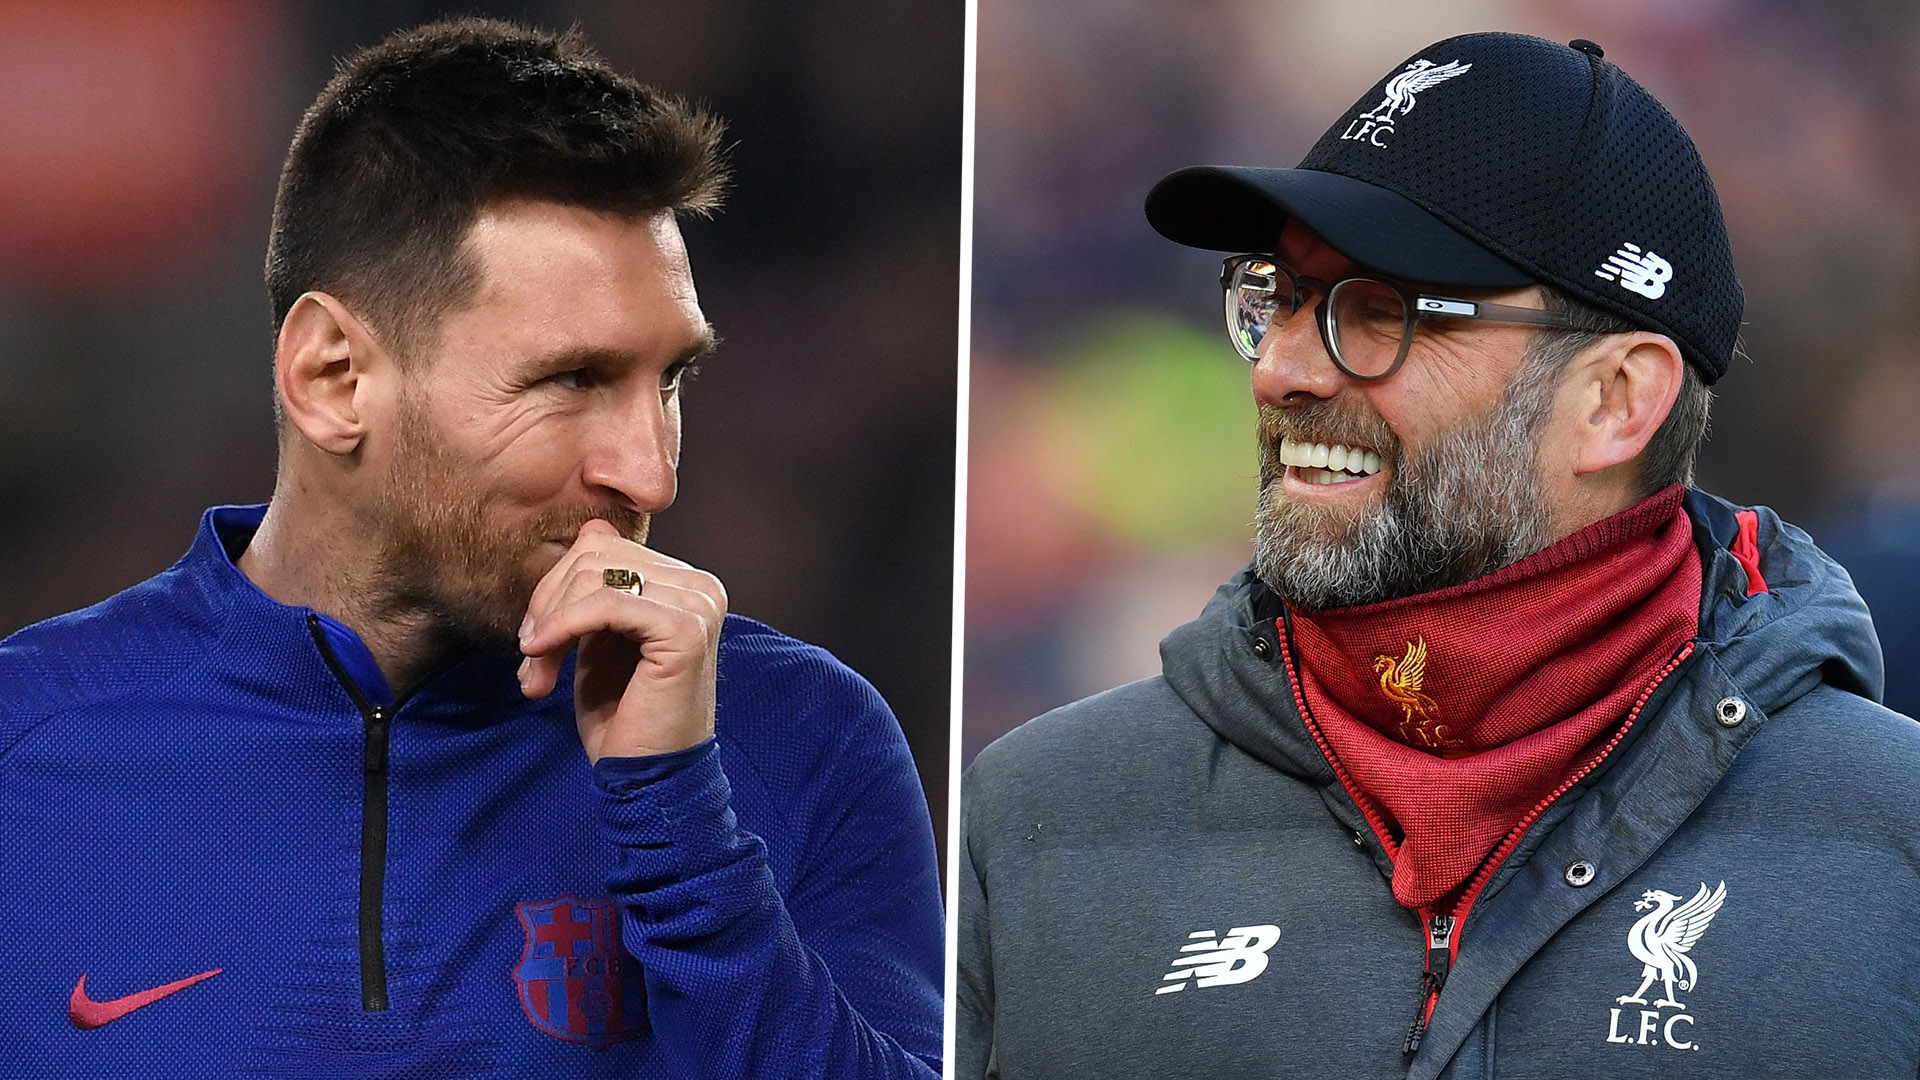 Liverpool manager Juergen Klopp says he will be interested in adding FC Barcelona captain Lionel Messi to his 2019/2020 English Premier League-winning squad if the conditions are right. Klopp said there was no chance it would happen because of the astronomical amount of money involved. Messi stunned world football earlier this week when he expressed […]